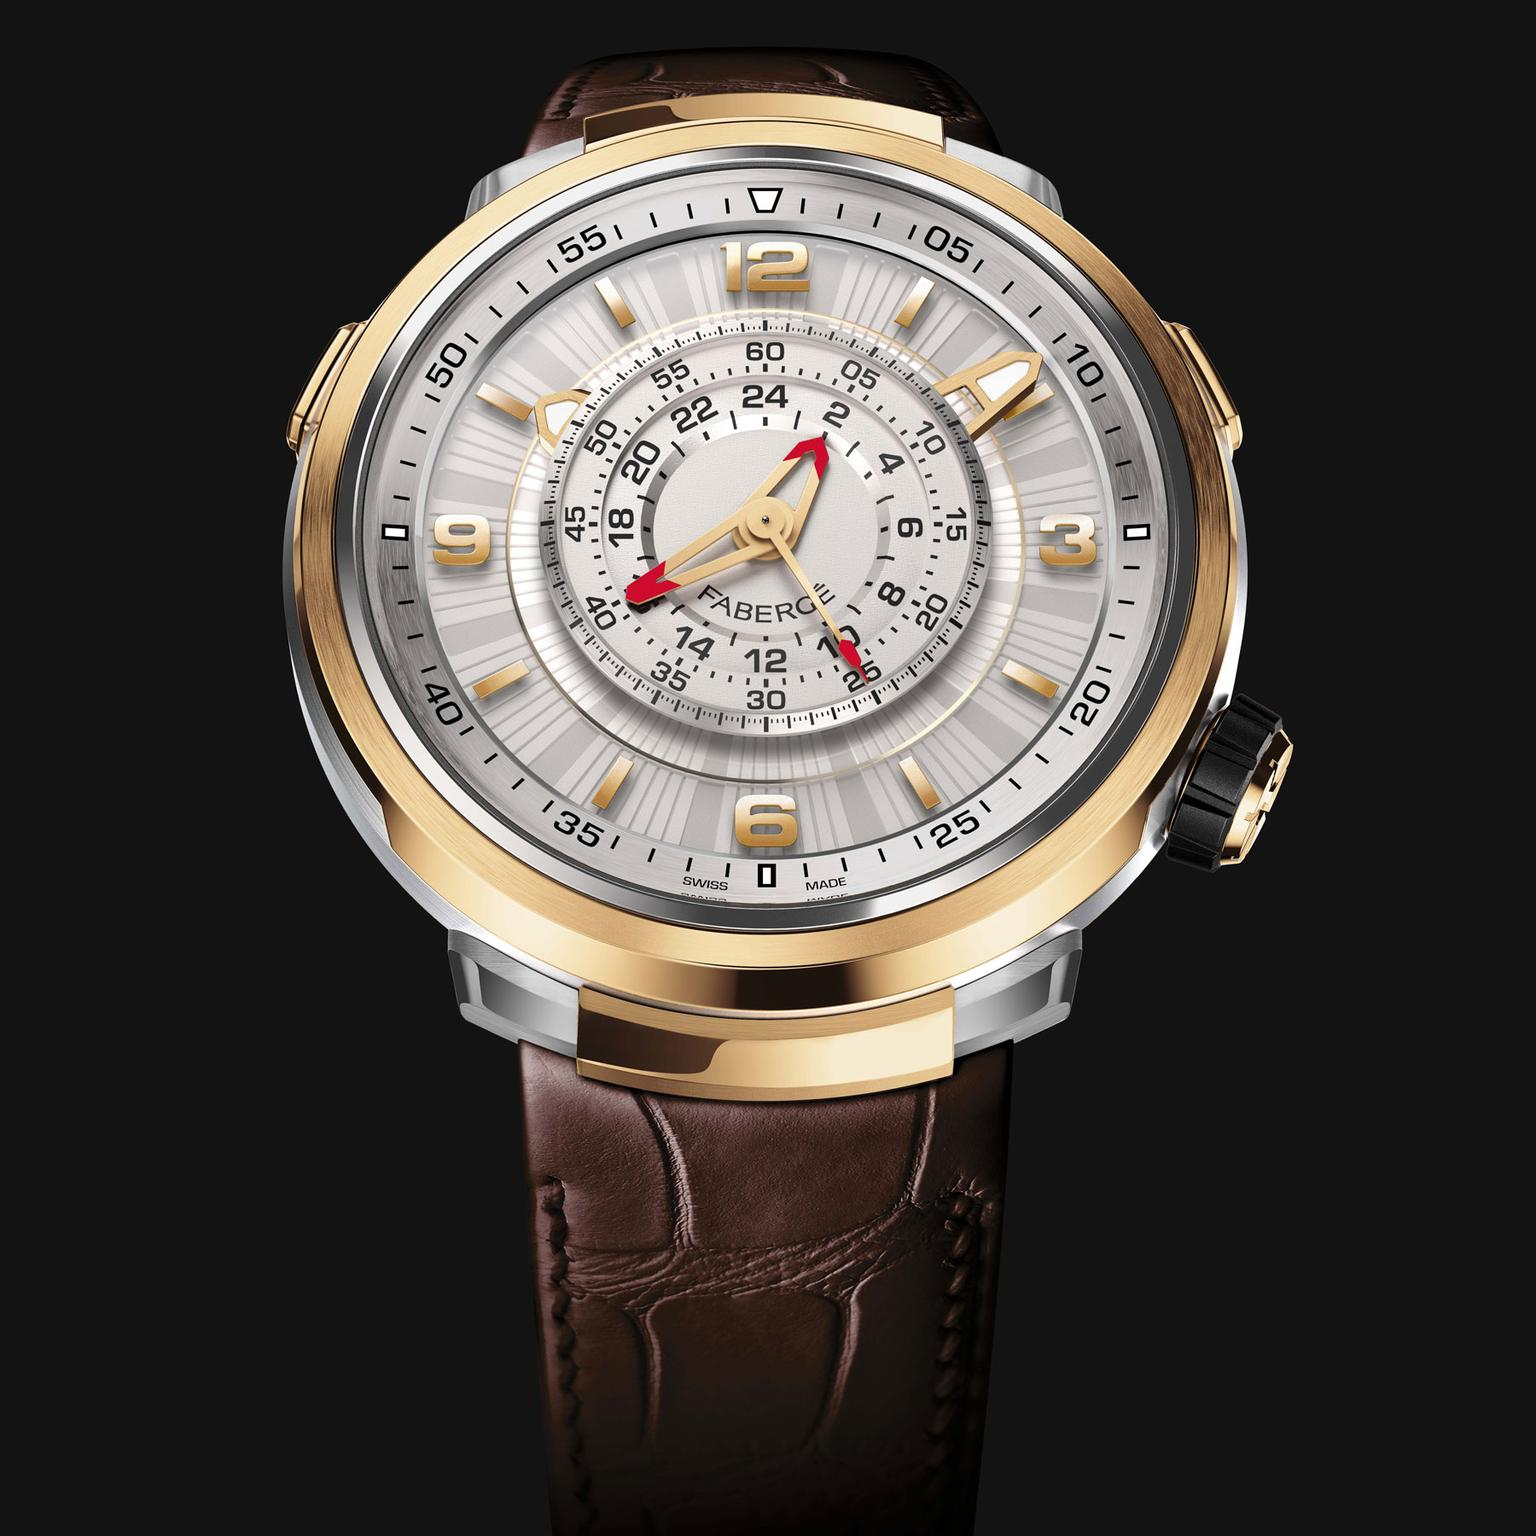 Faberge Visionnaire Chronograph watch in rose gold